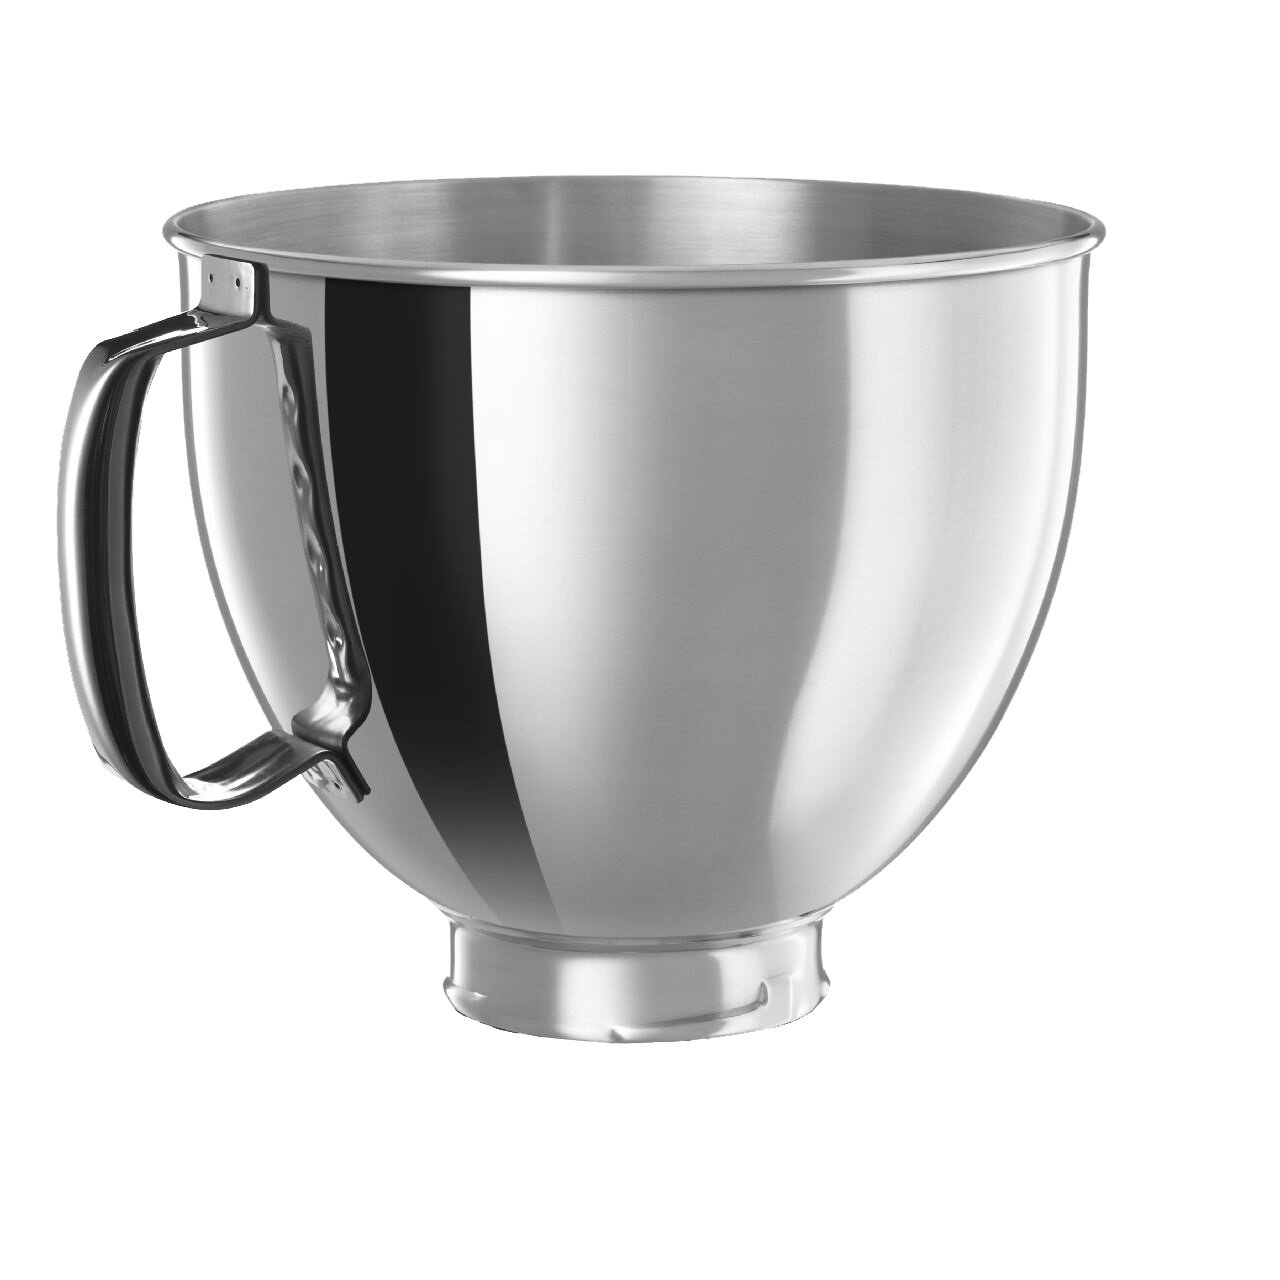 KitchenAid 5 Qt. Polished Stainless Steel Bowl with Handle for ...